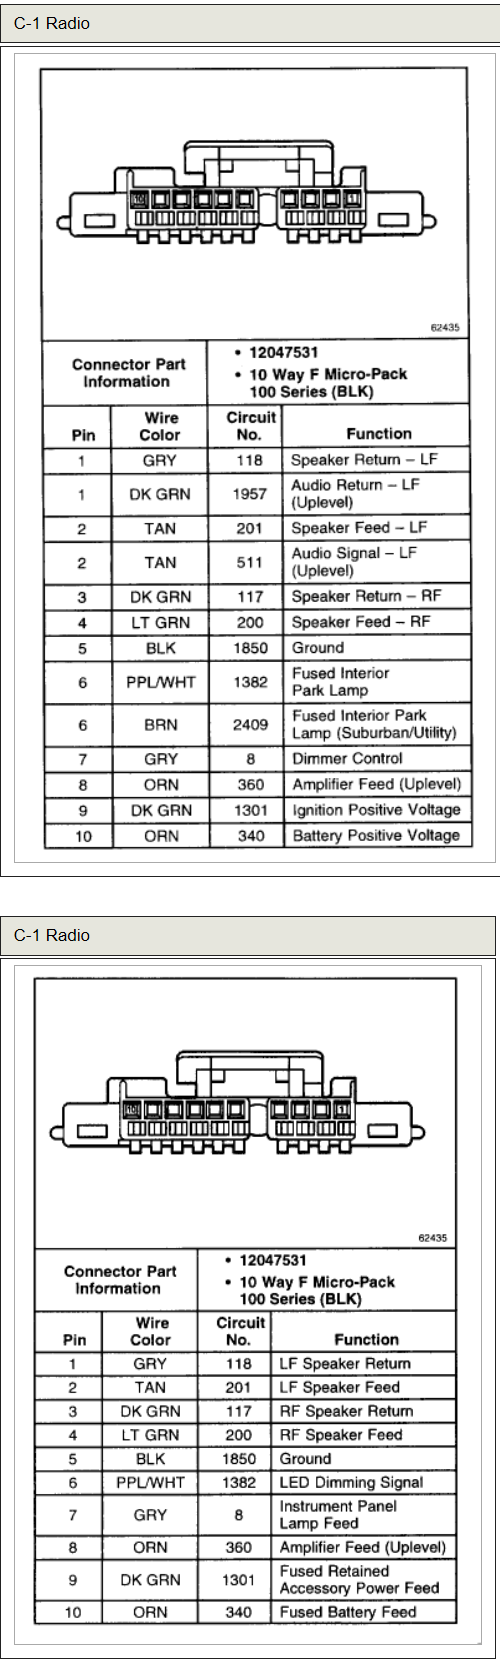 Chevrolet Car Radio Stereo Audio Wiring Diagram Autoradio Connector 03 Accord Wire Installation Schematic Schema Esquema De Conexiones Anschlusskammern Konektor